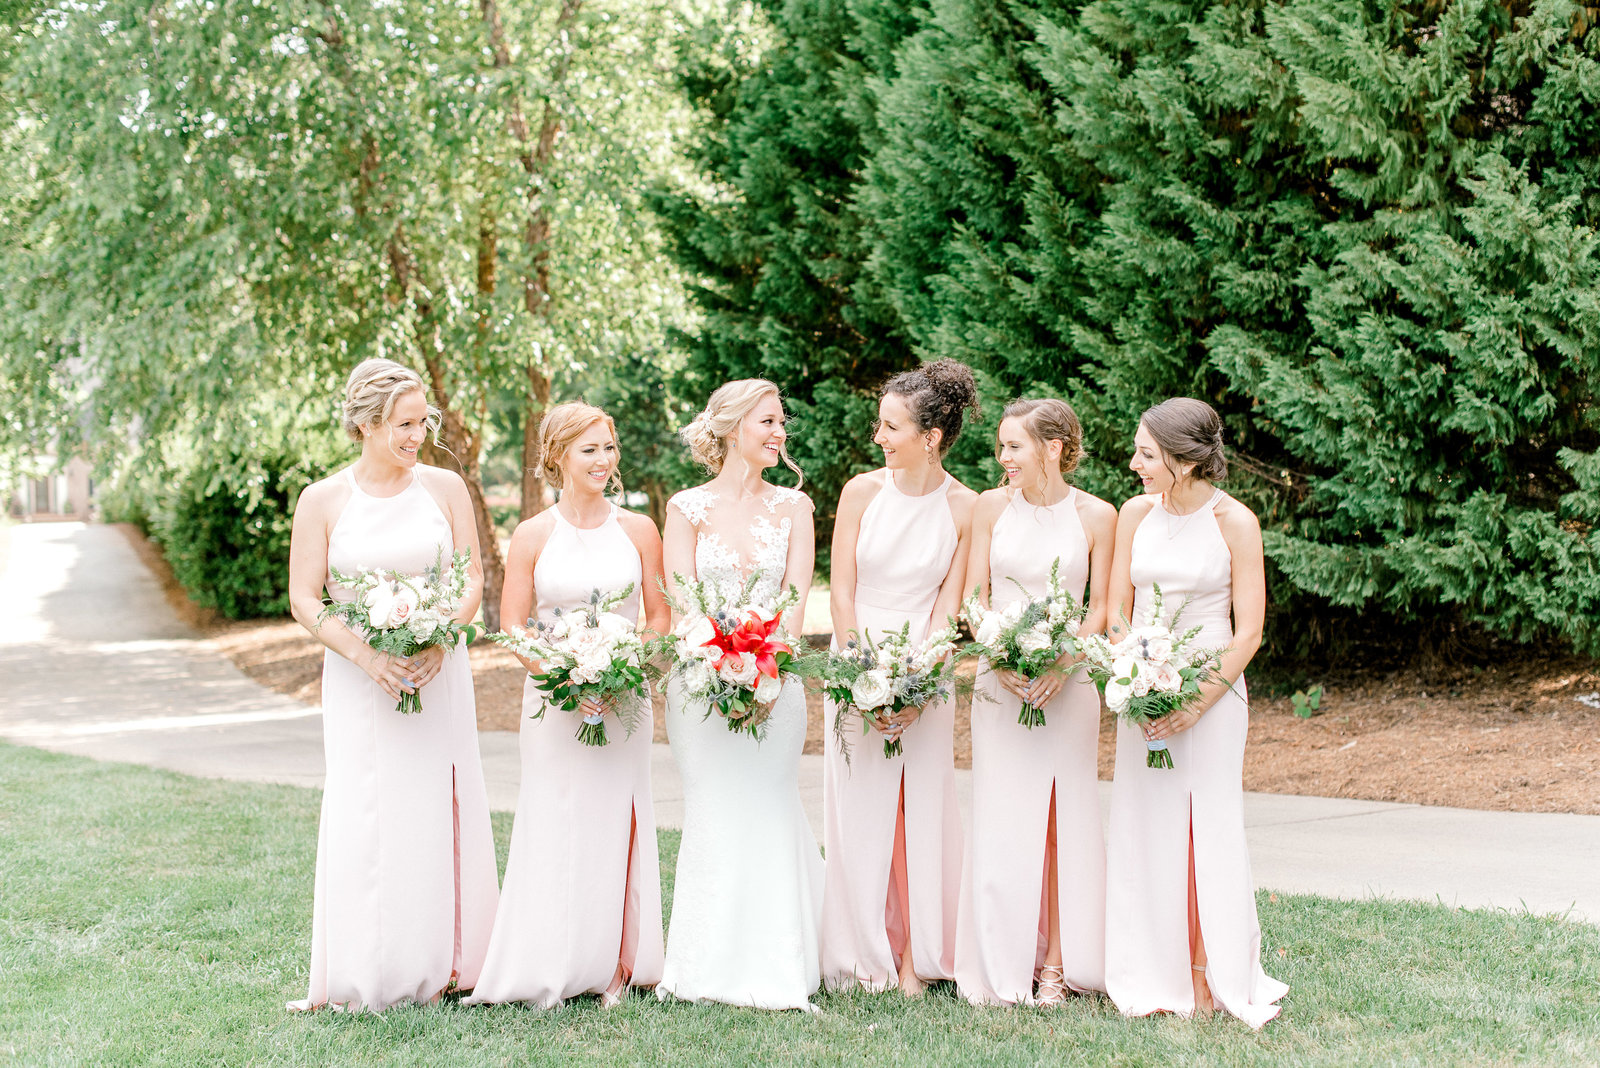 charlotte-wedding-photographer-firethorne-country-club-wedding-golf-course-fine-art-bright-and-airy-film-photographer-alyssa-frost-photography-4